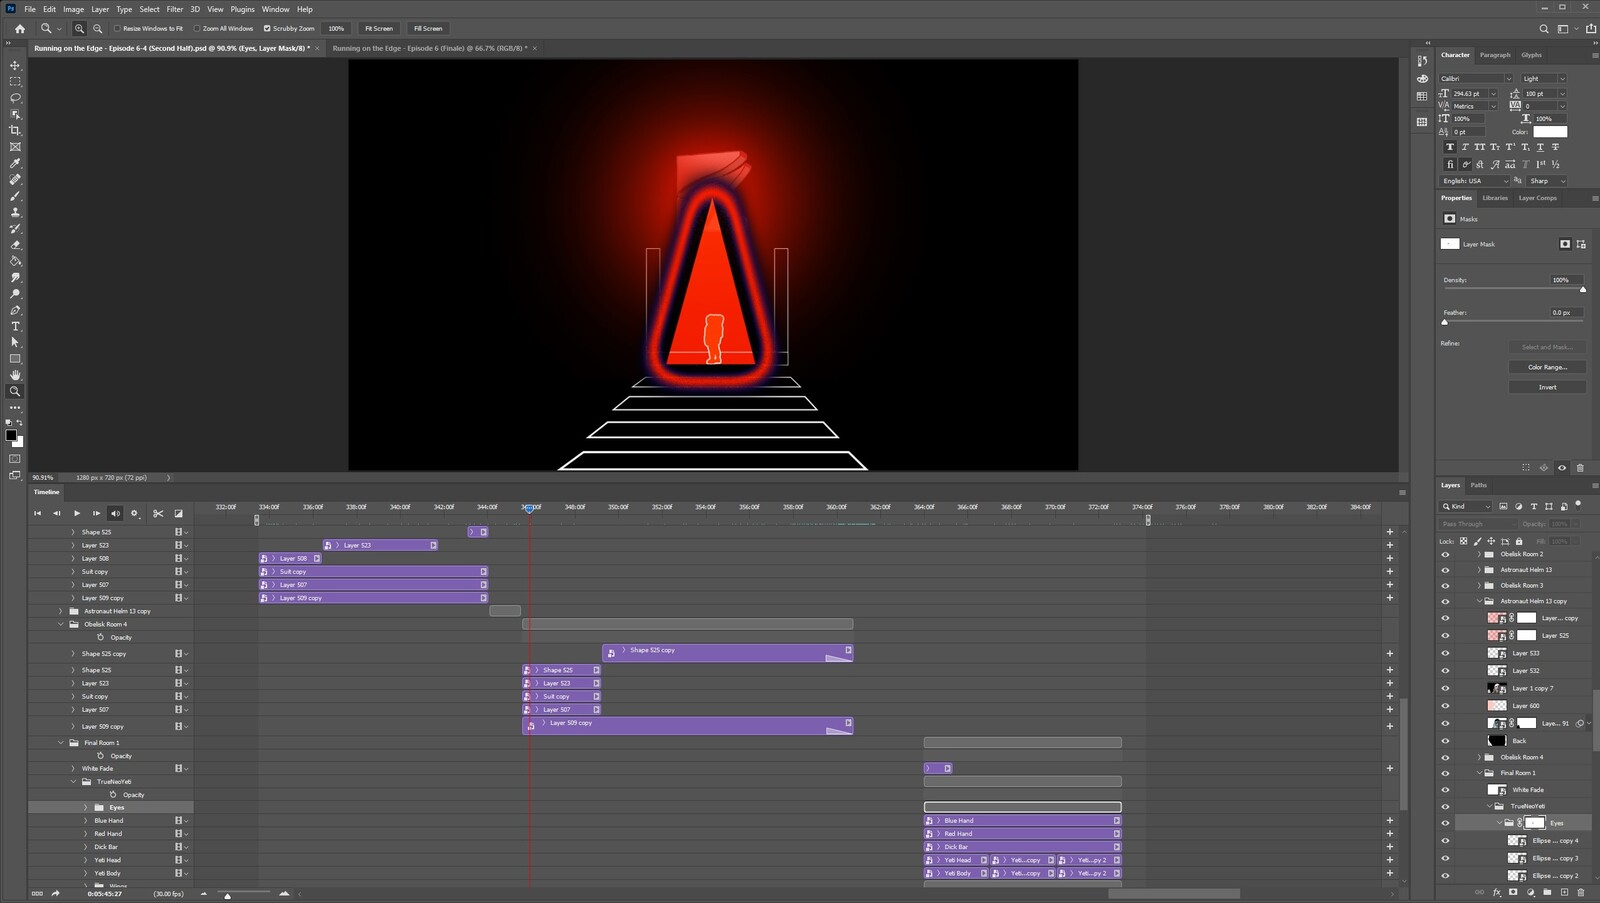 """The """"2020: A Time Oddity, Part 14"""" visual effect within Photoshop video editor"""